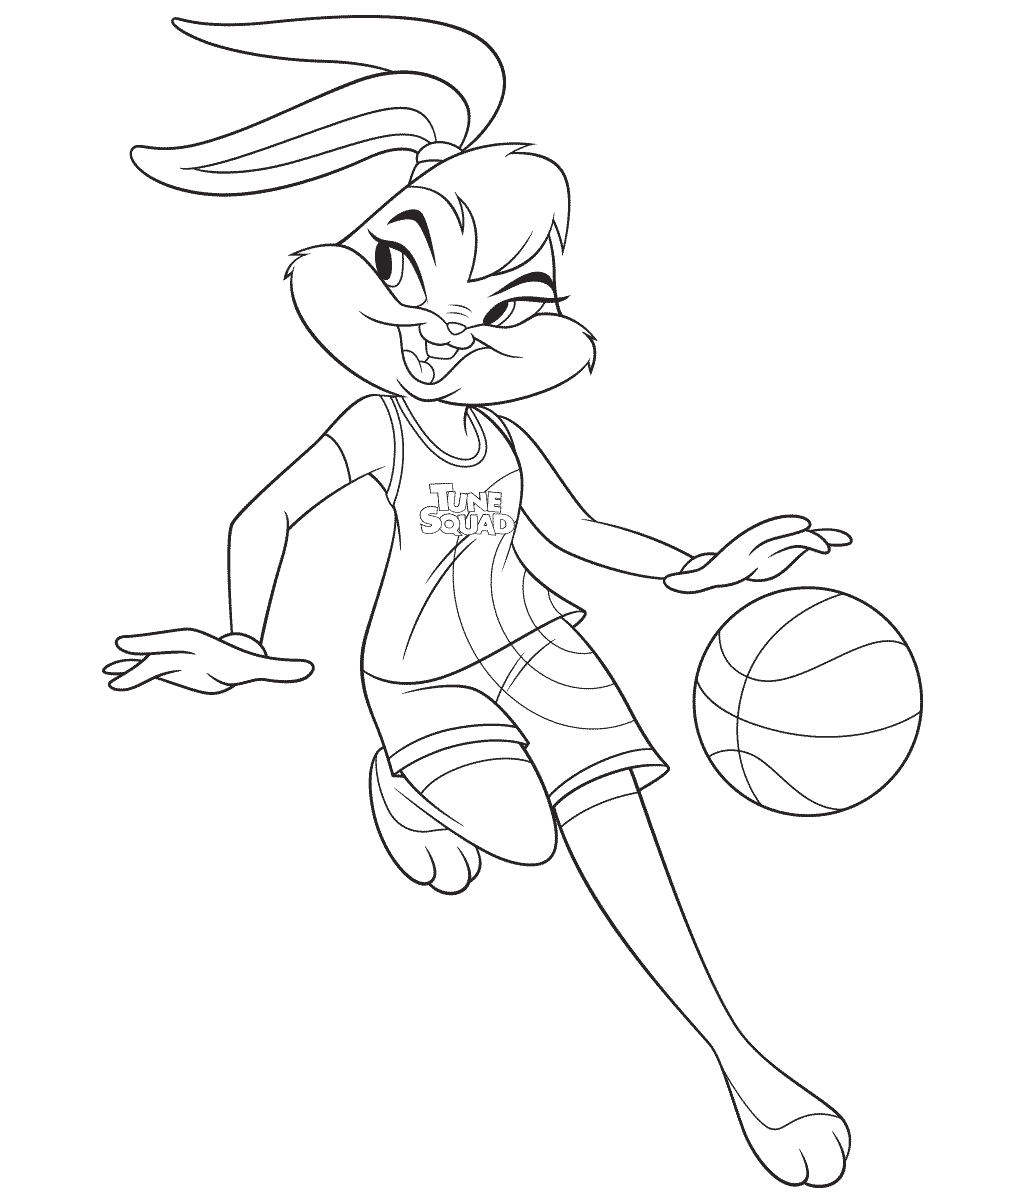 Lola Bunny from Space Jam 2